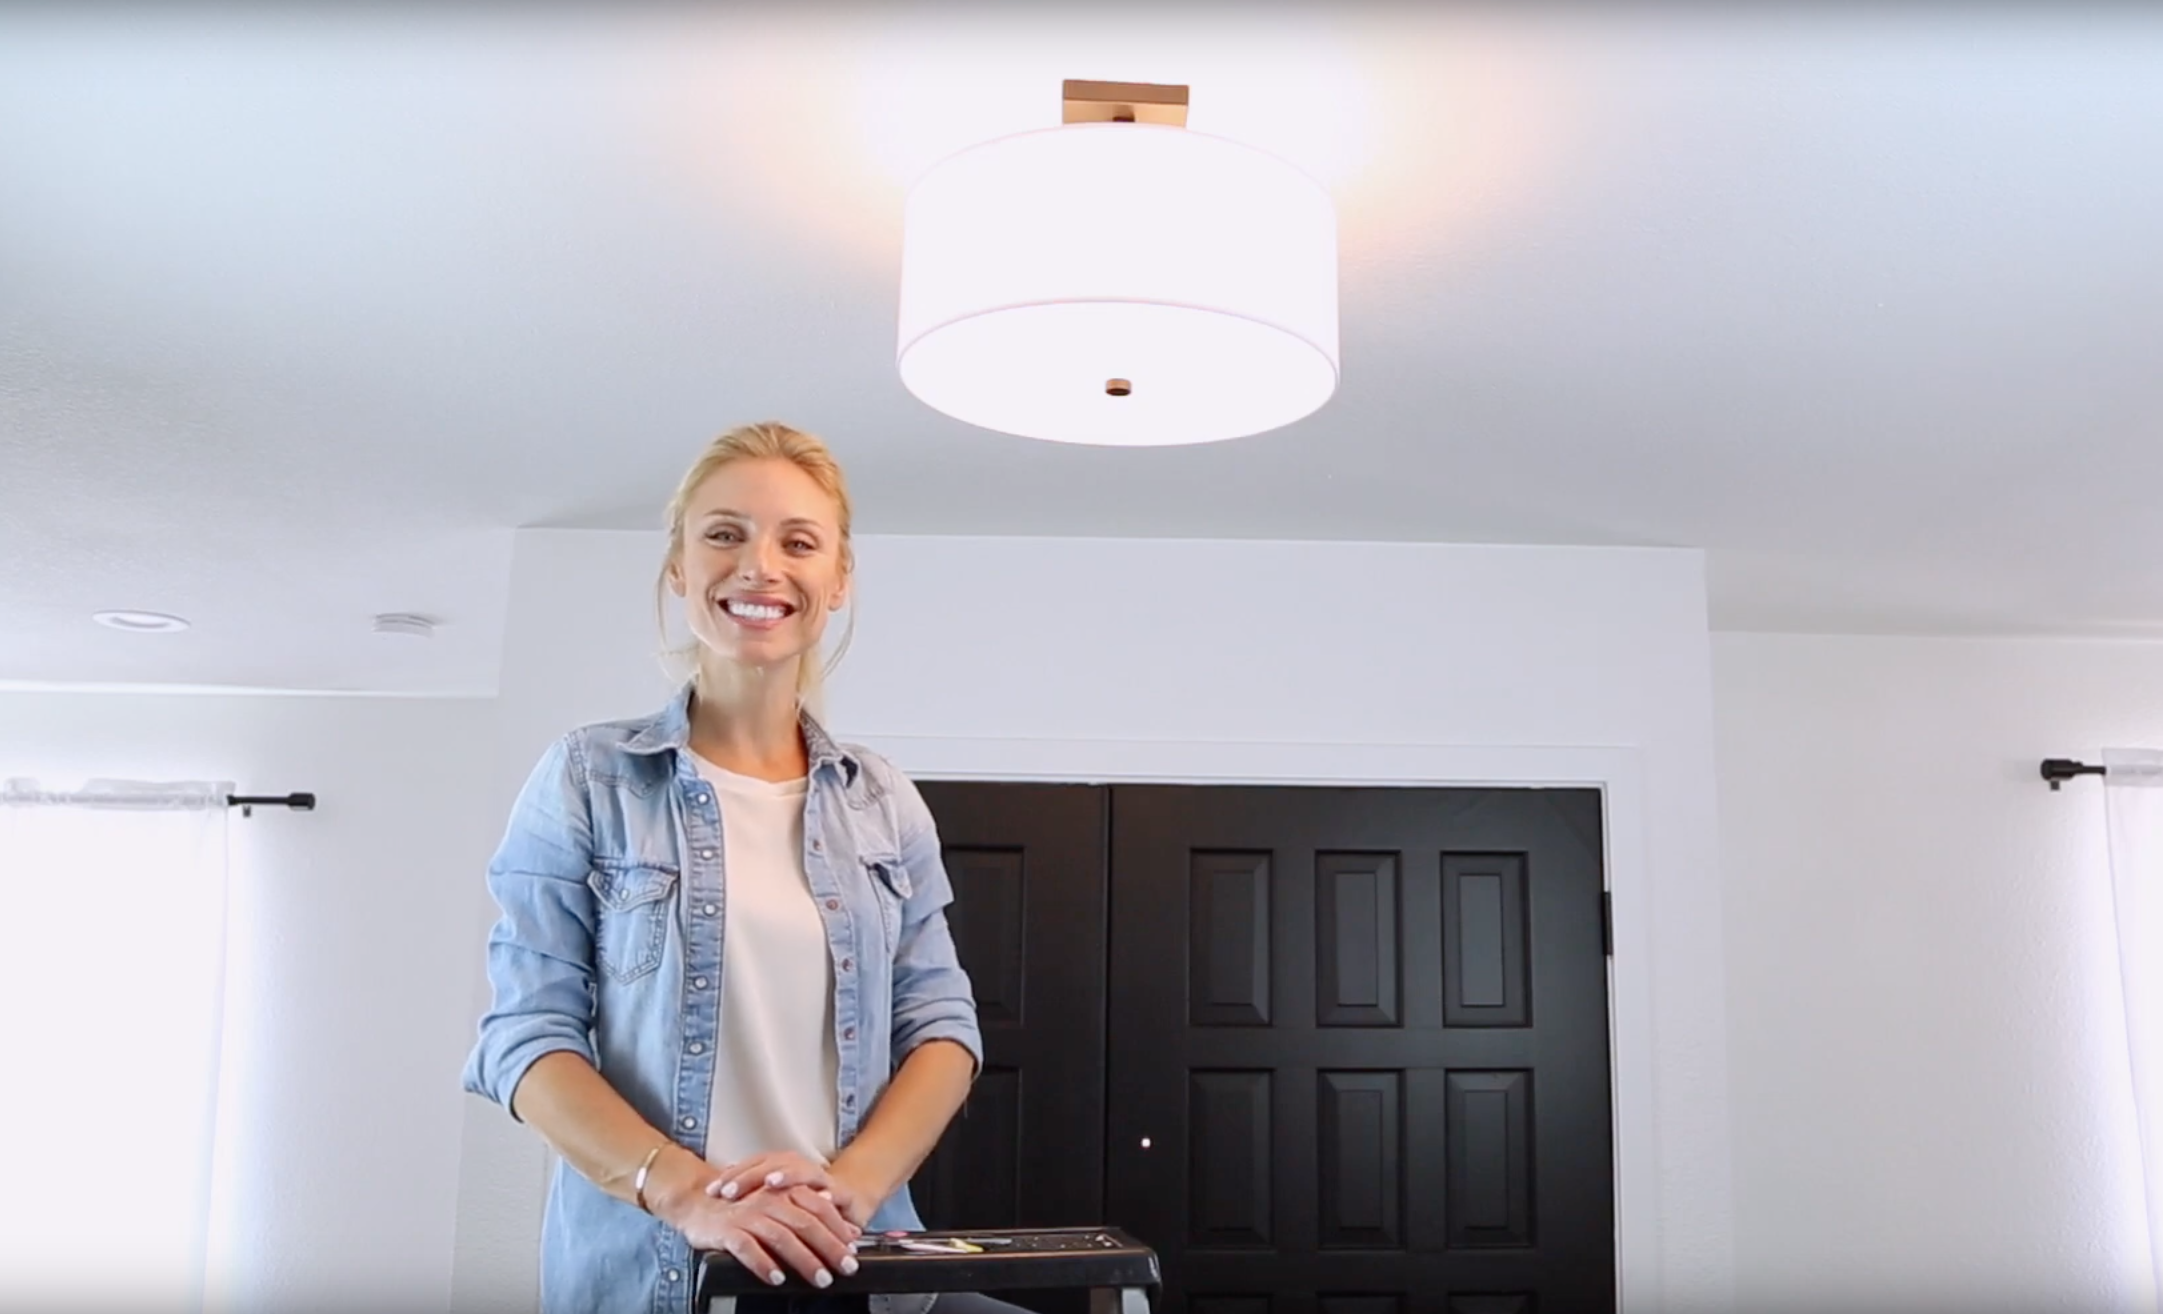 How to Install a Semi Flush Mount Light